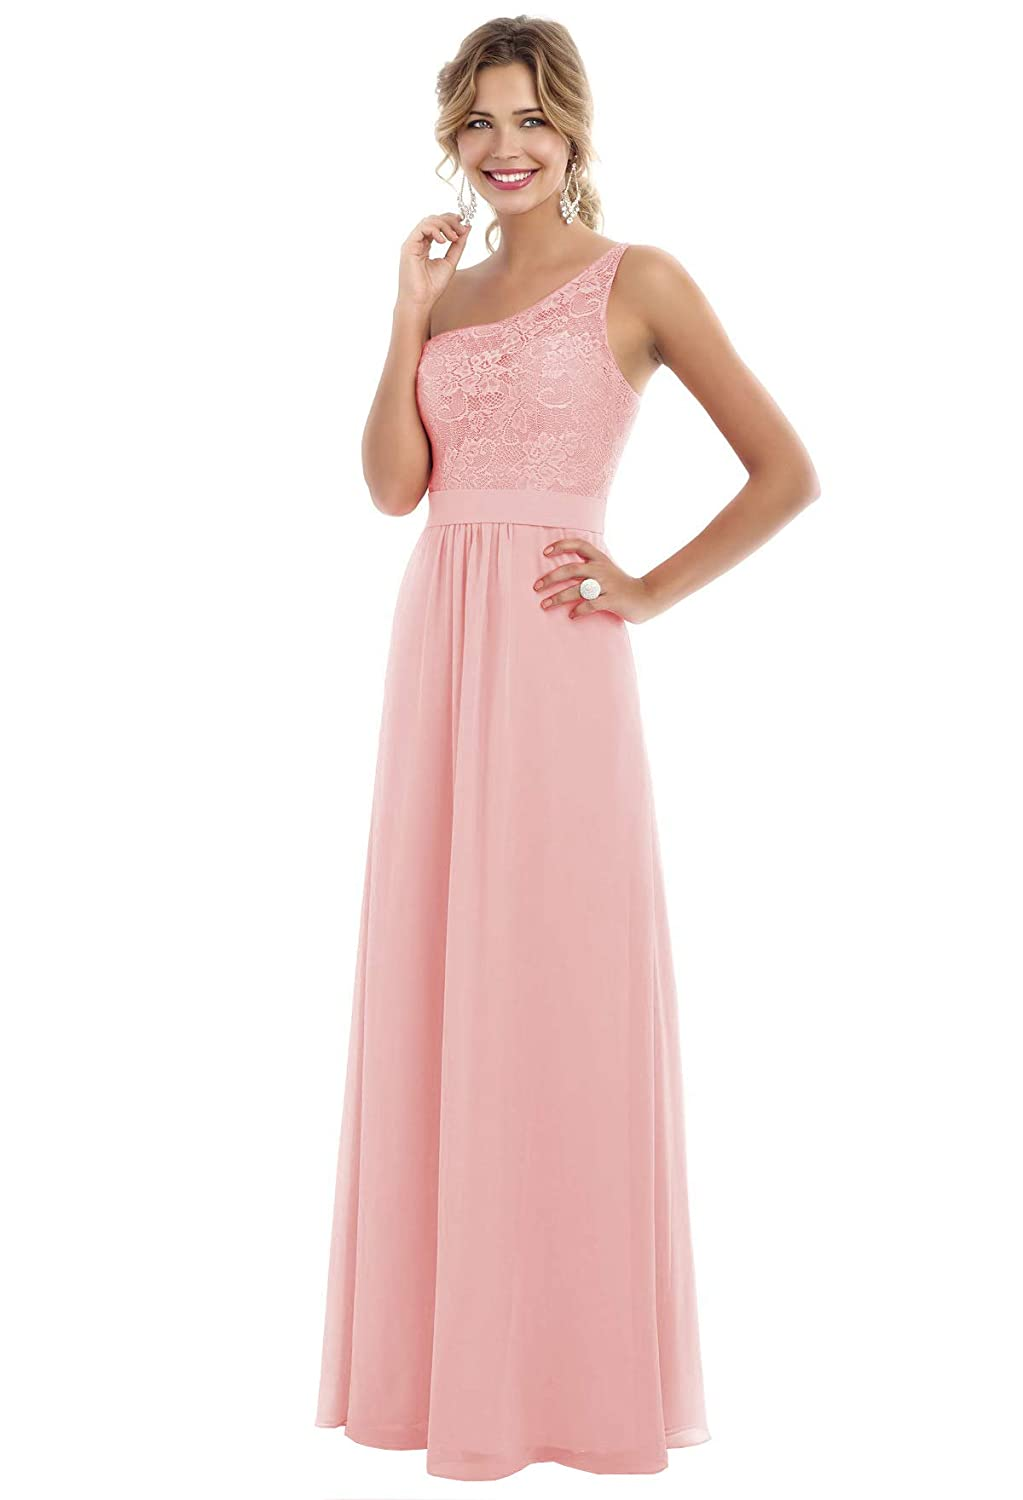 buying cheap sold worldwide where to buy Beauty Bridal Women's One Shoulder Chiffon Bridesmaid Dress Long A-line  Prom Evening Gowns S007 (12,Blush Pink)